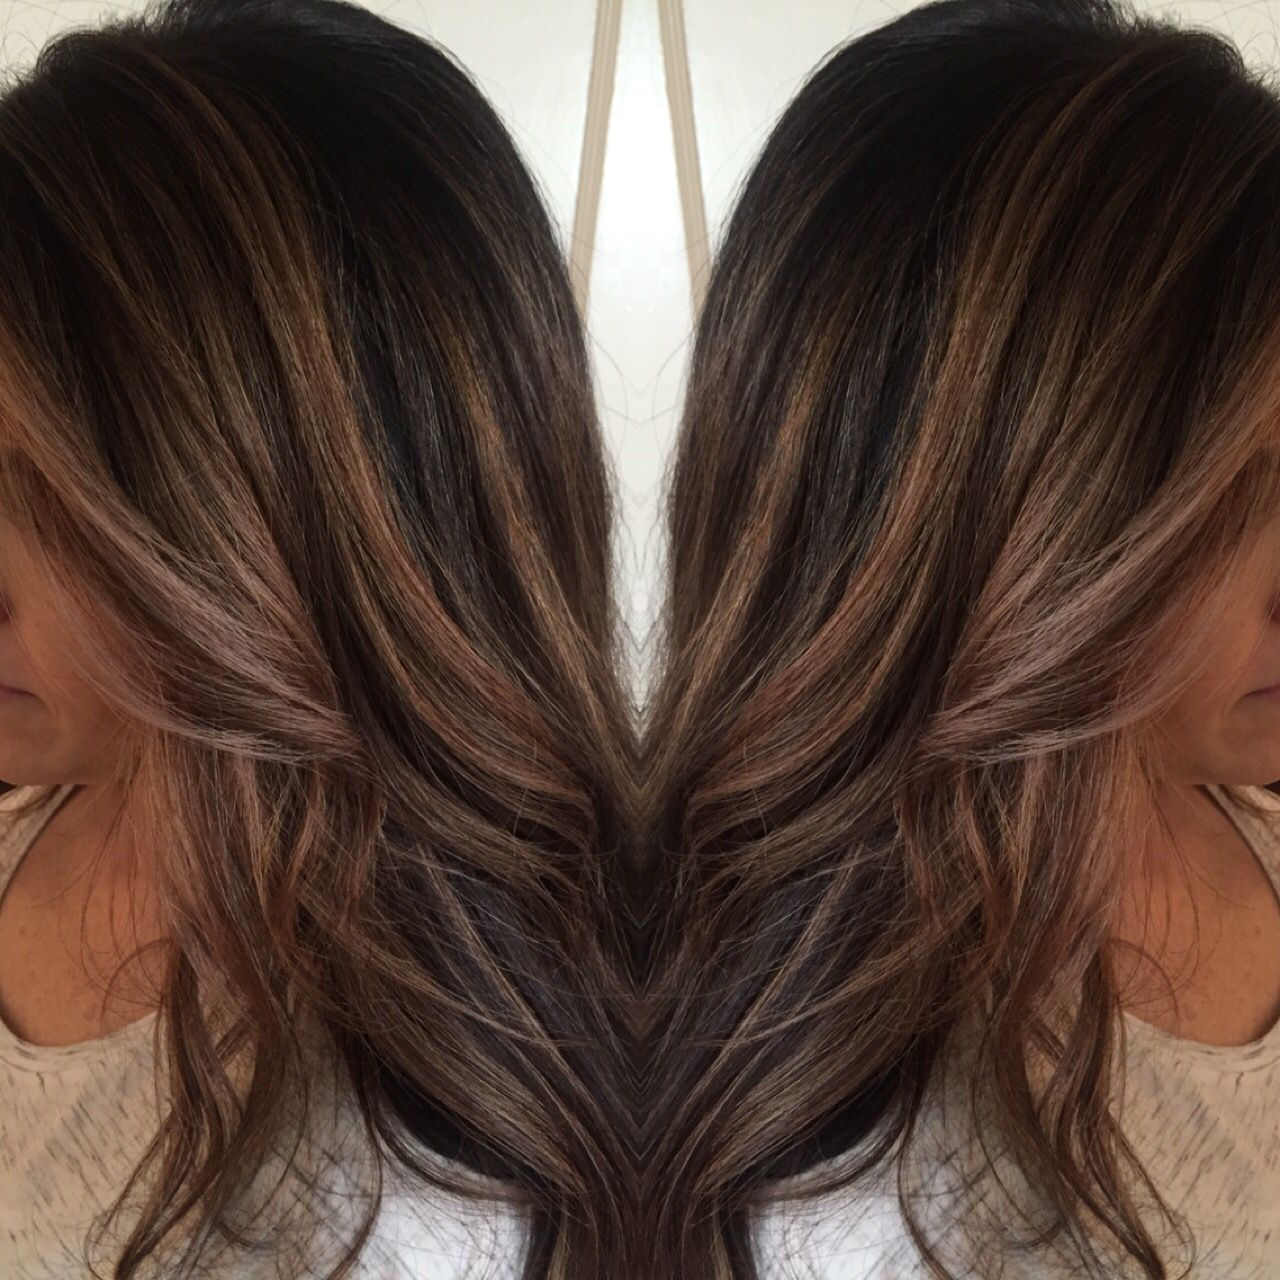 Ashy Blonde Highlights To Add Dimension For This Dark